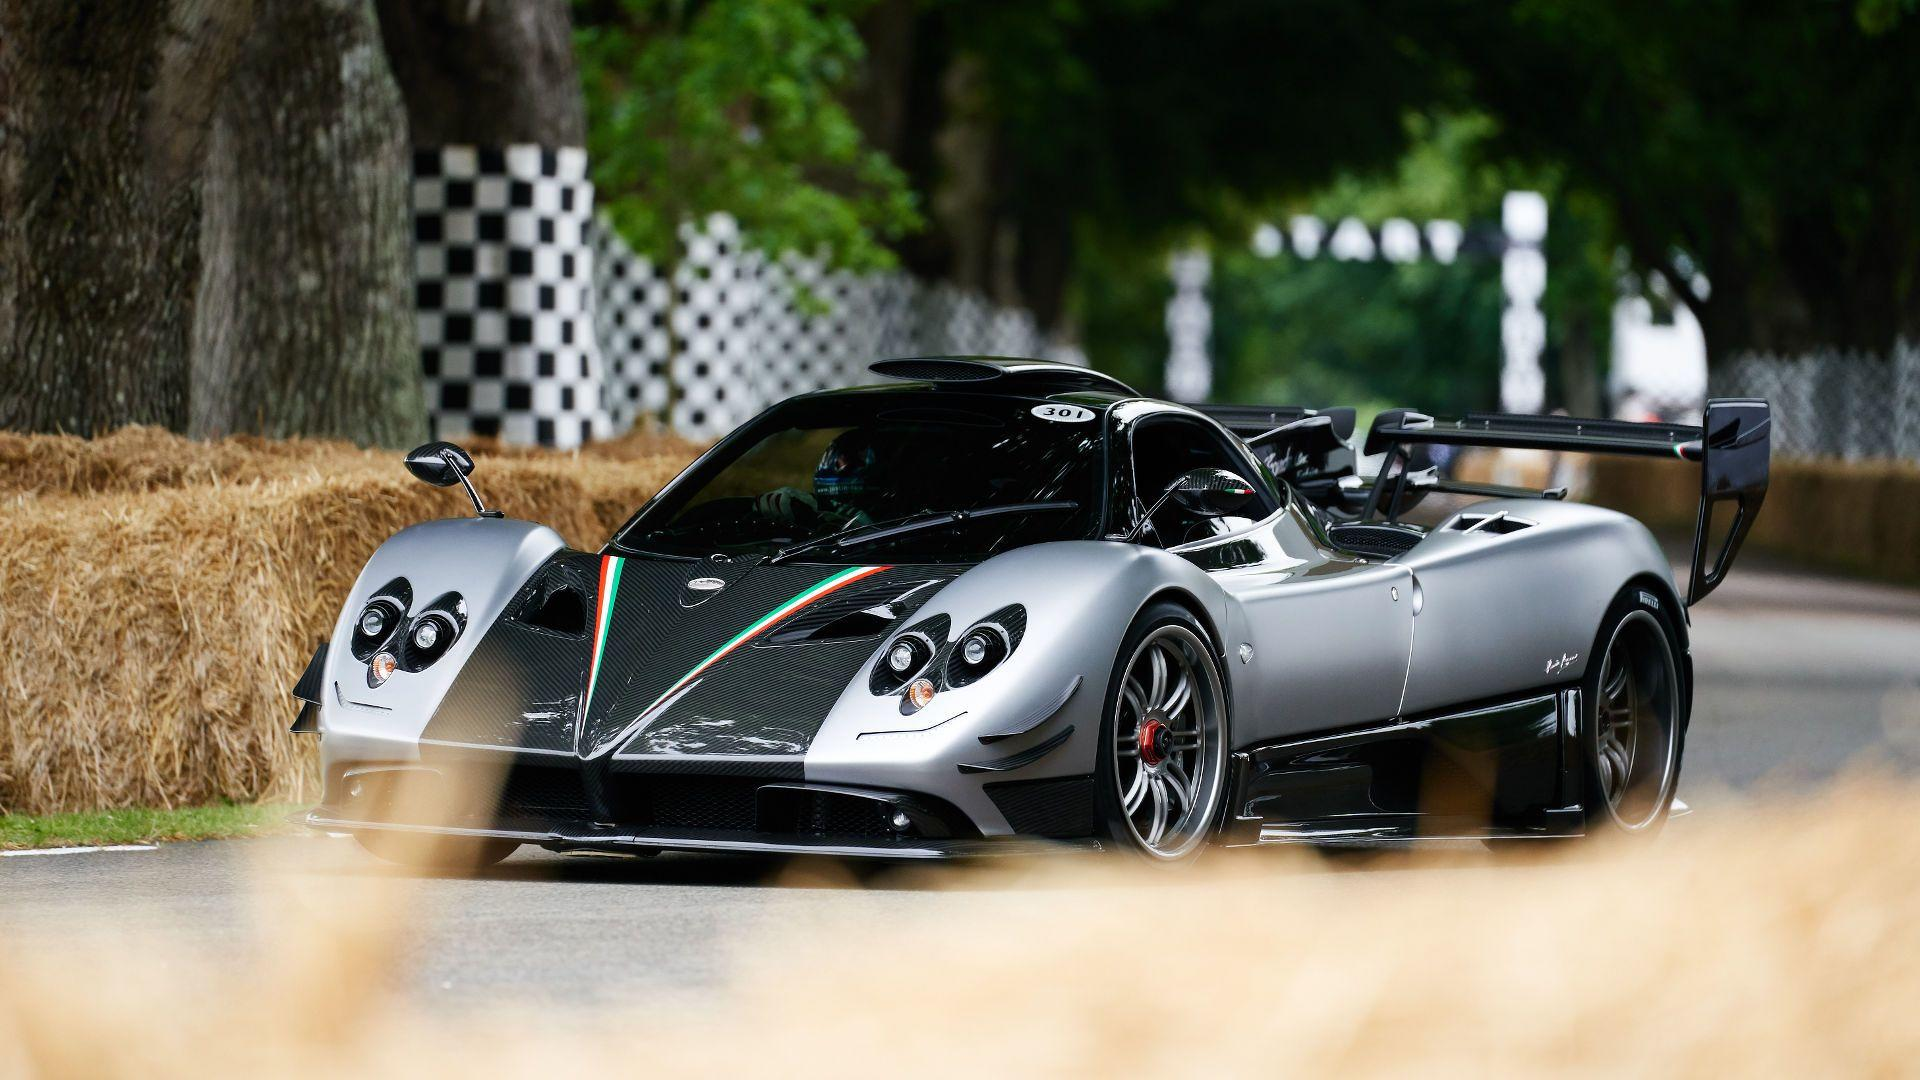 Watching The Pagani Zonda 760 Goodwood Hillclimb Never Gets Old